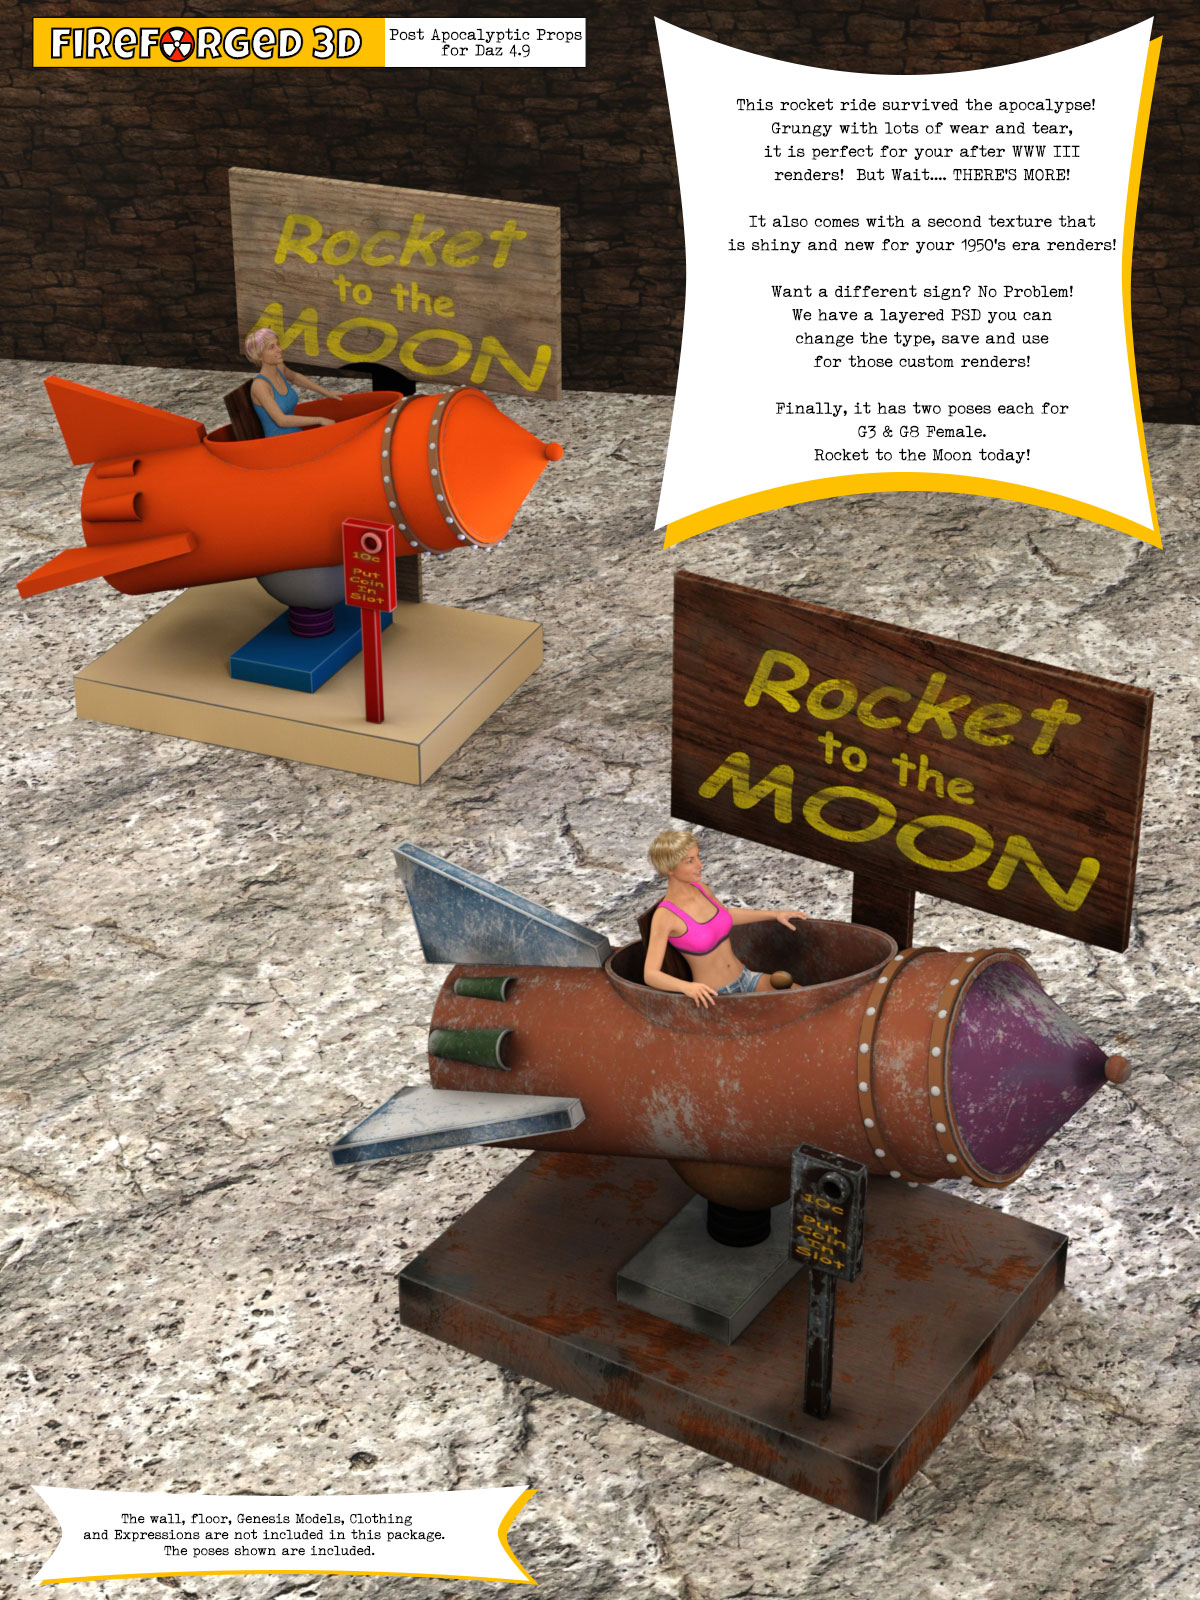 Rocket Ride and Poses for Daz Studio